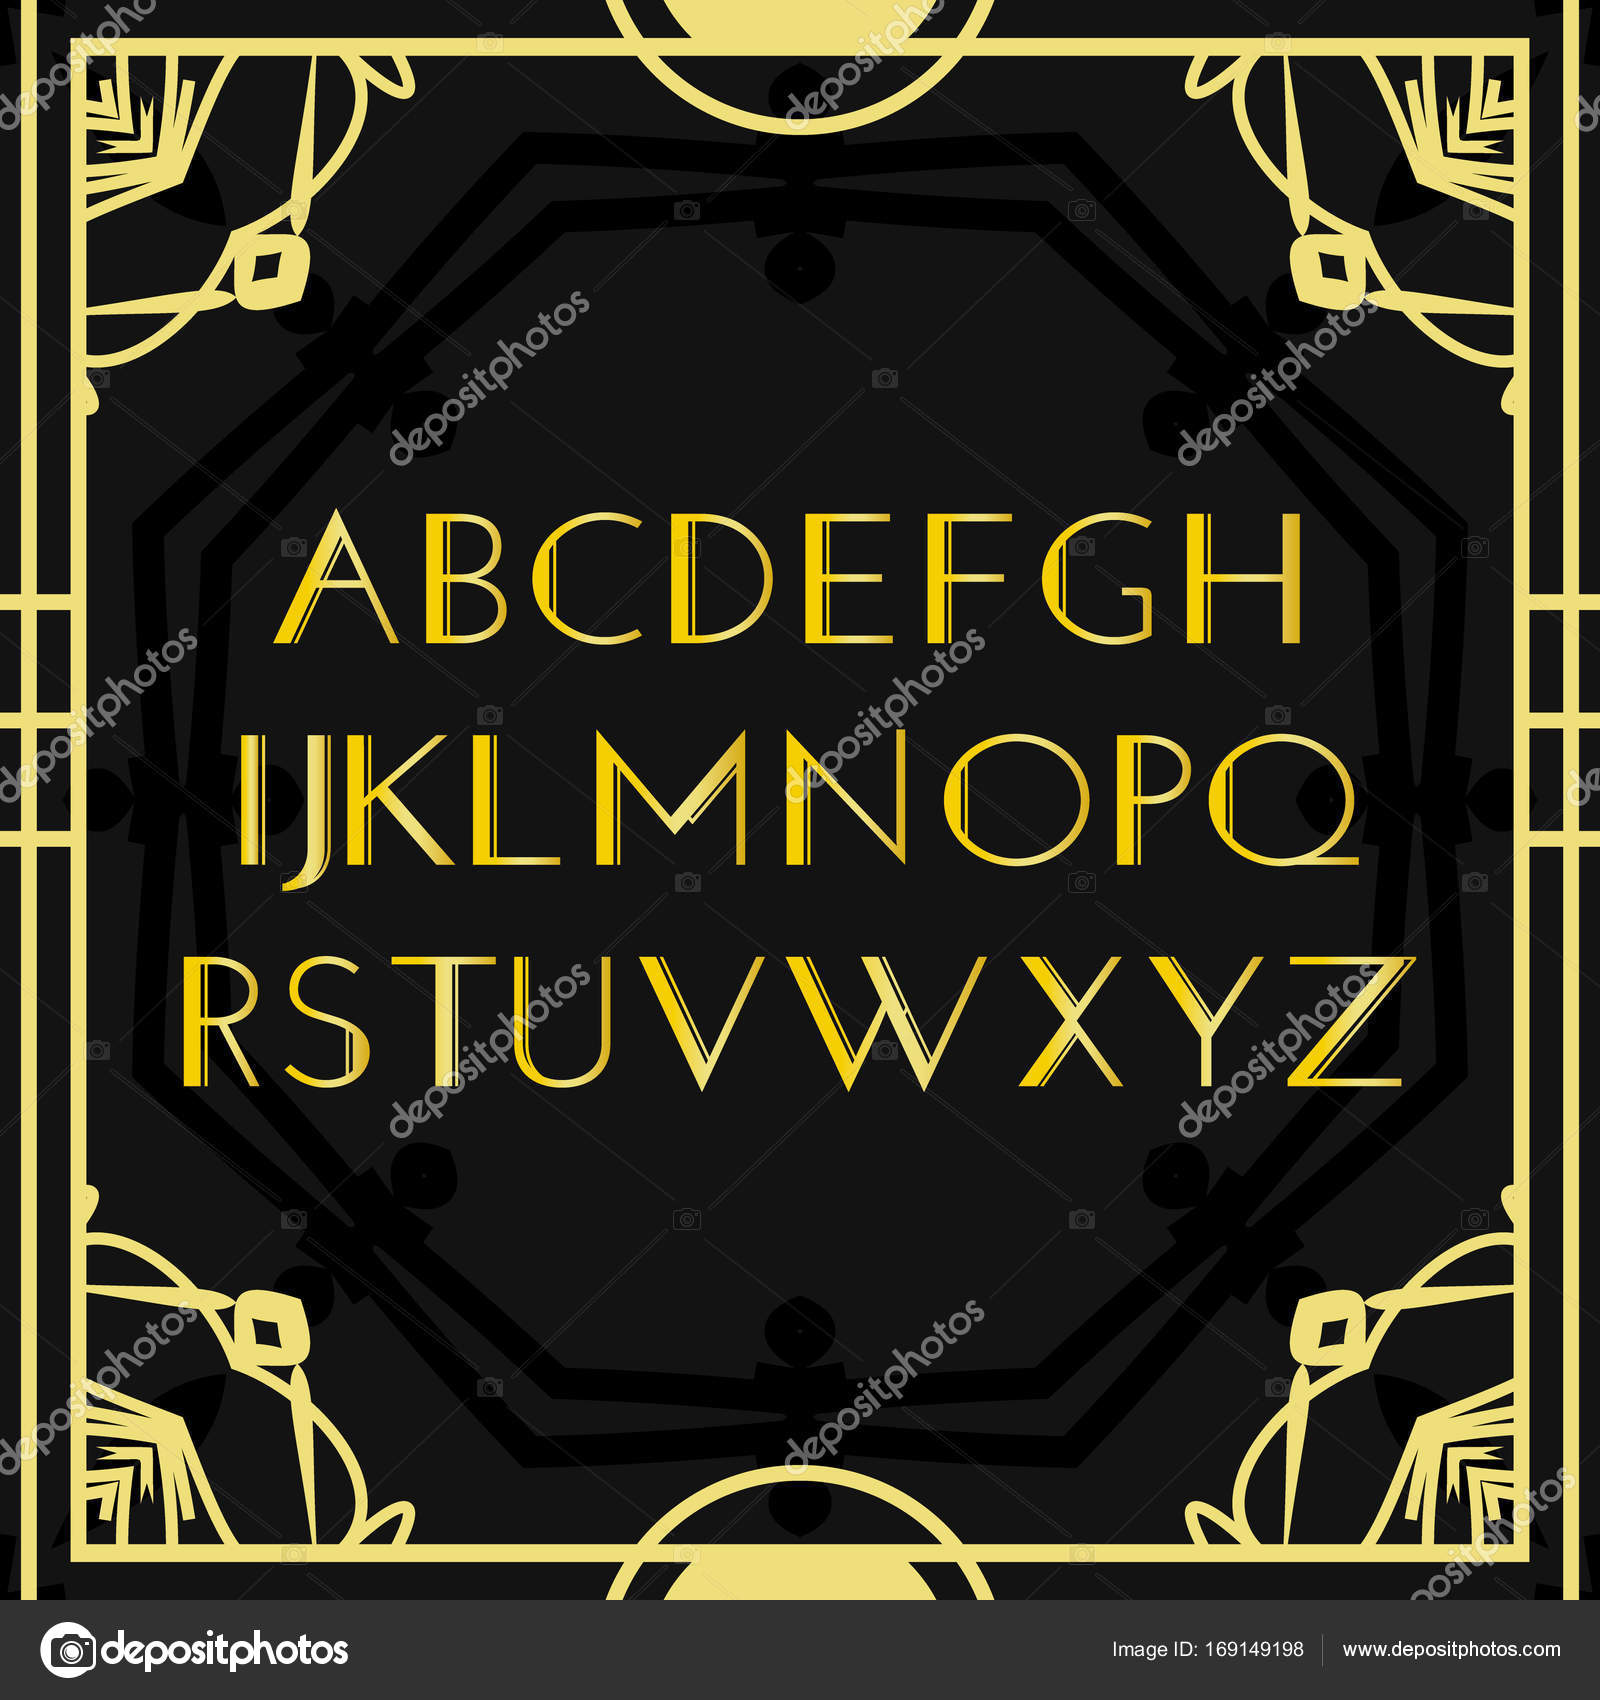 Font vector art deco vintage alphabet retro gold frame for Art deco decoracion